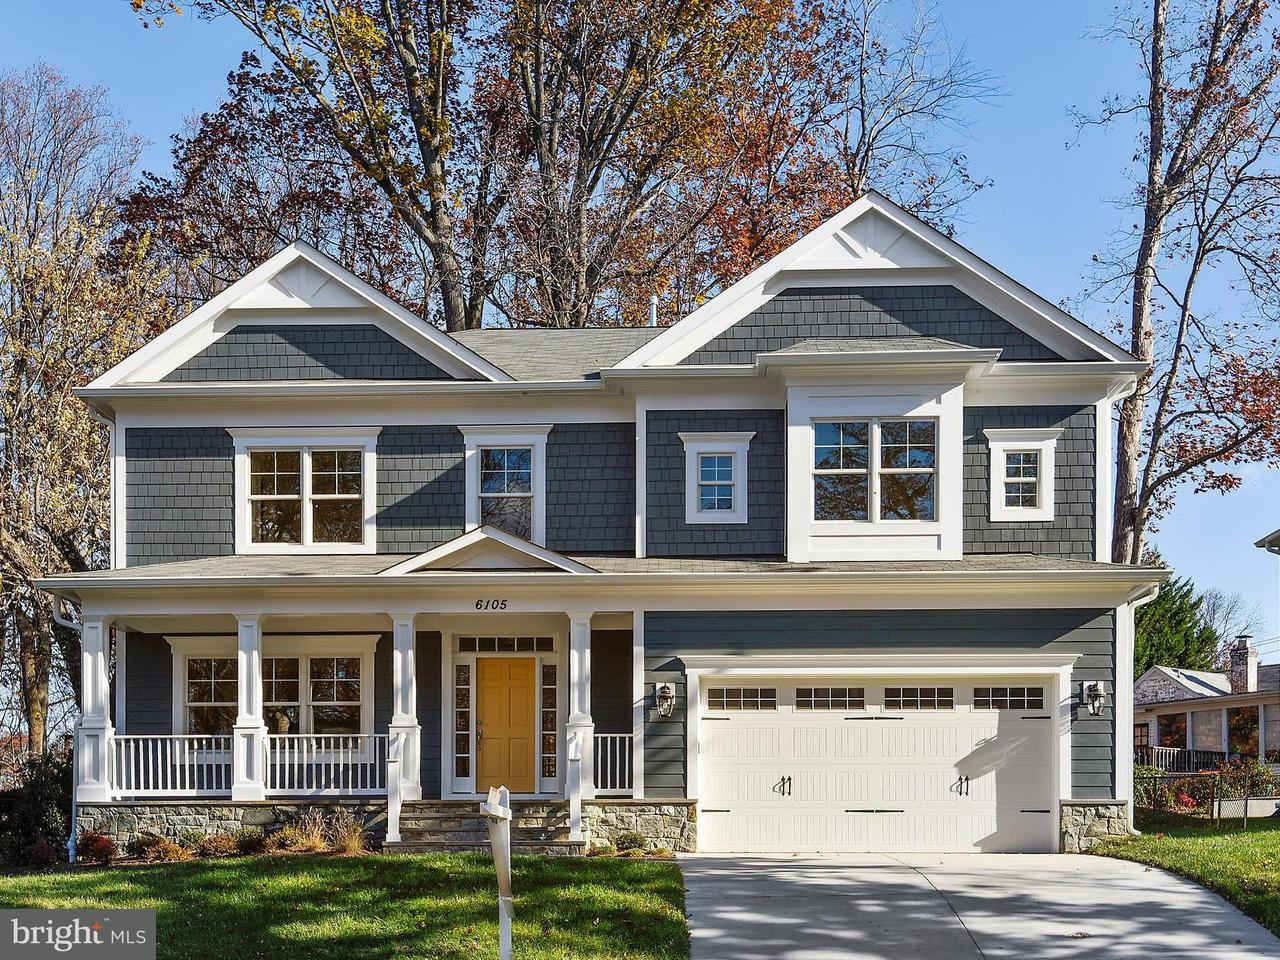 Single Family Home for Sale at 6105 MELVERN Drive 6105 MELVERN Drive Bethesda, Maryland 20817 United States